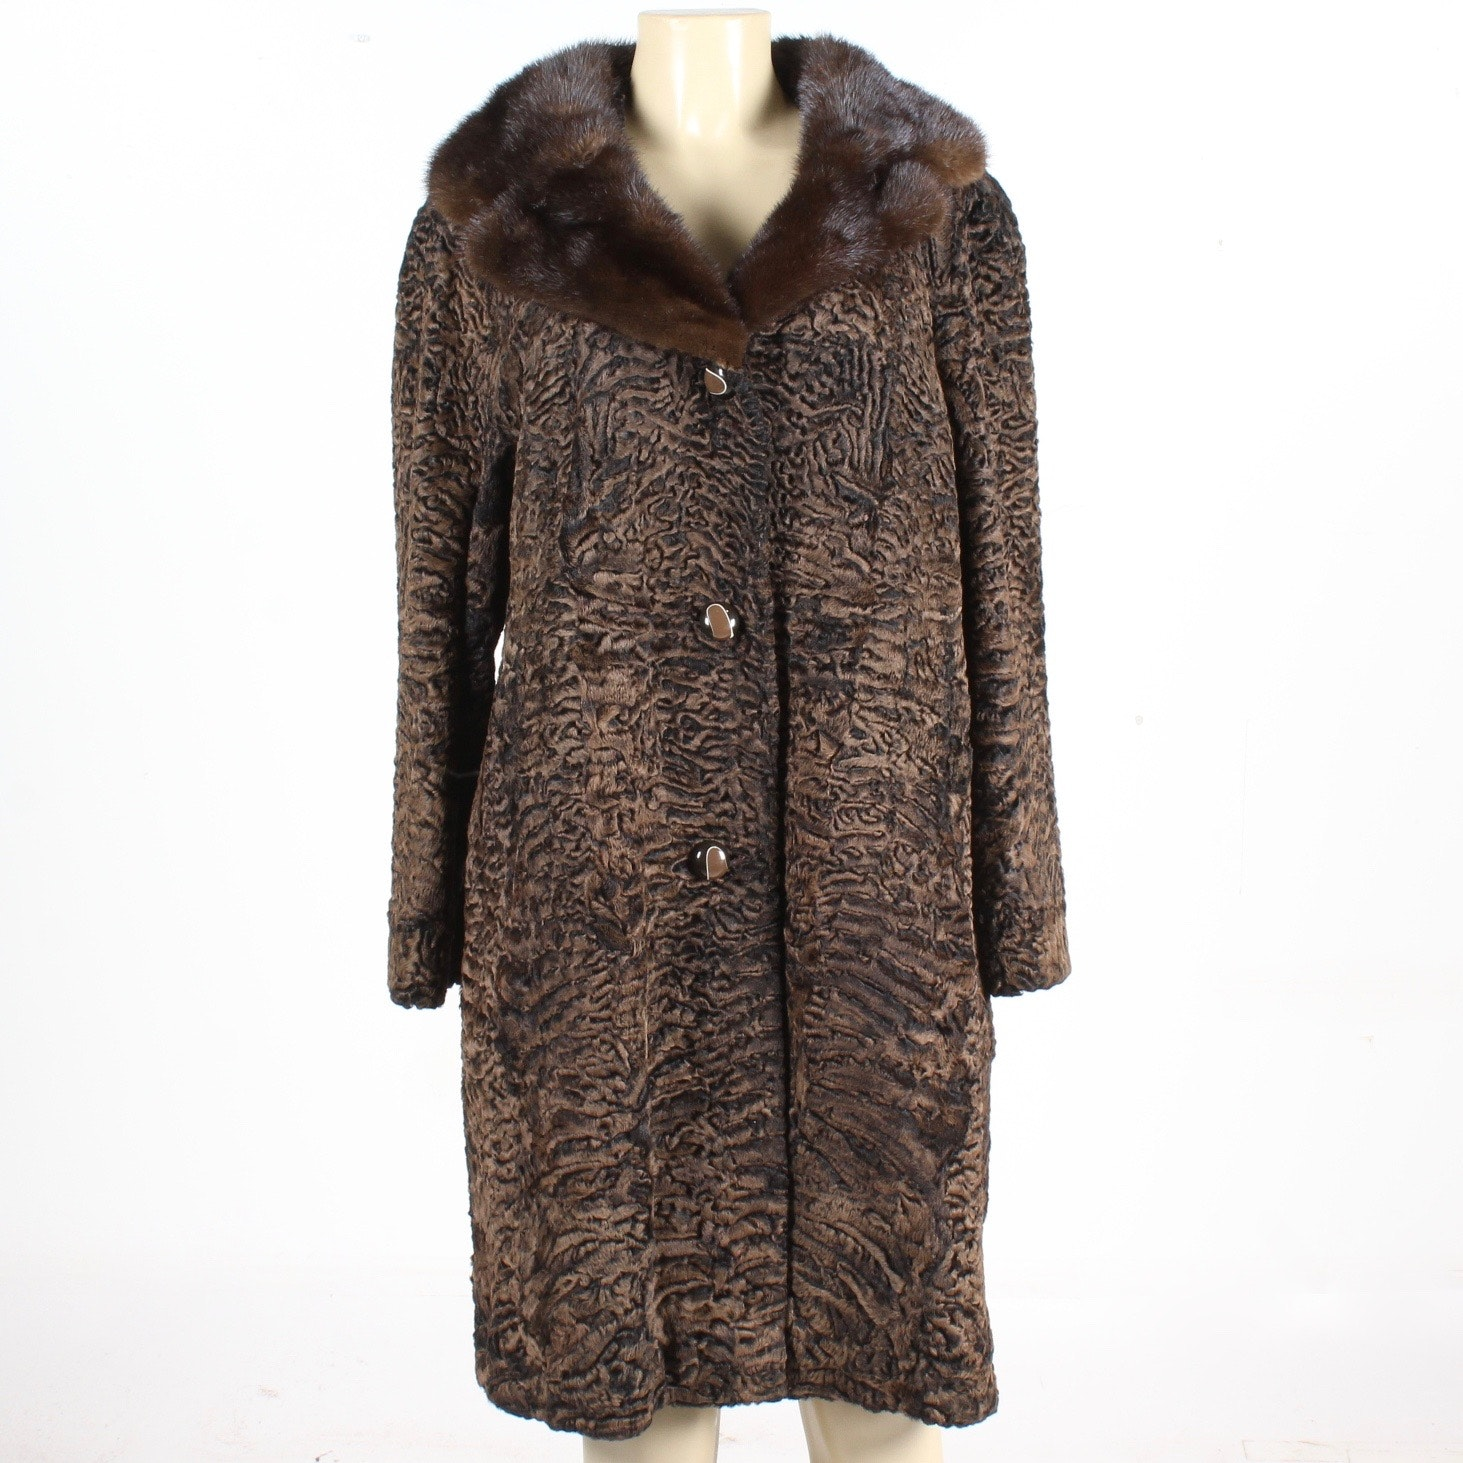 Vintage Curly Lamb Coat with Mink Collar by Ferdinand Roth